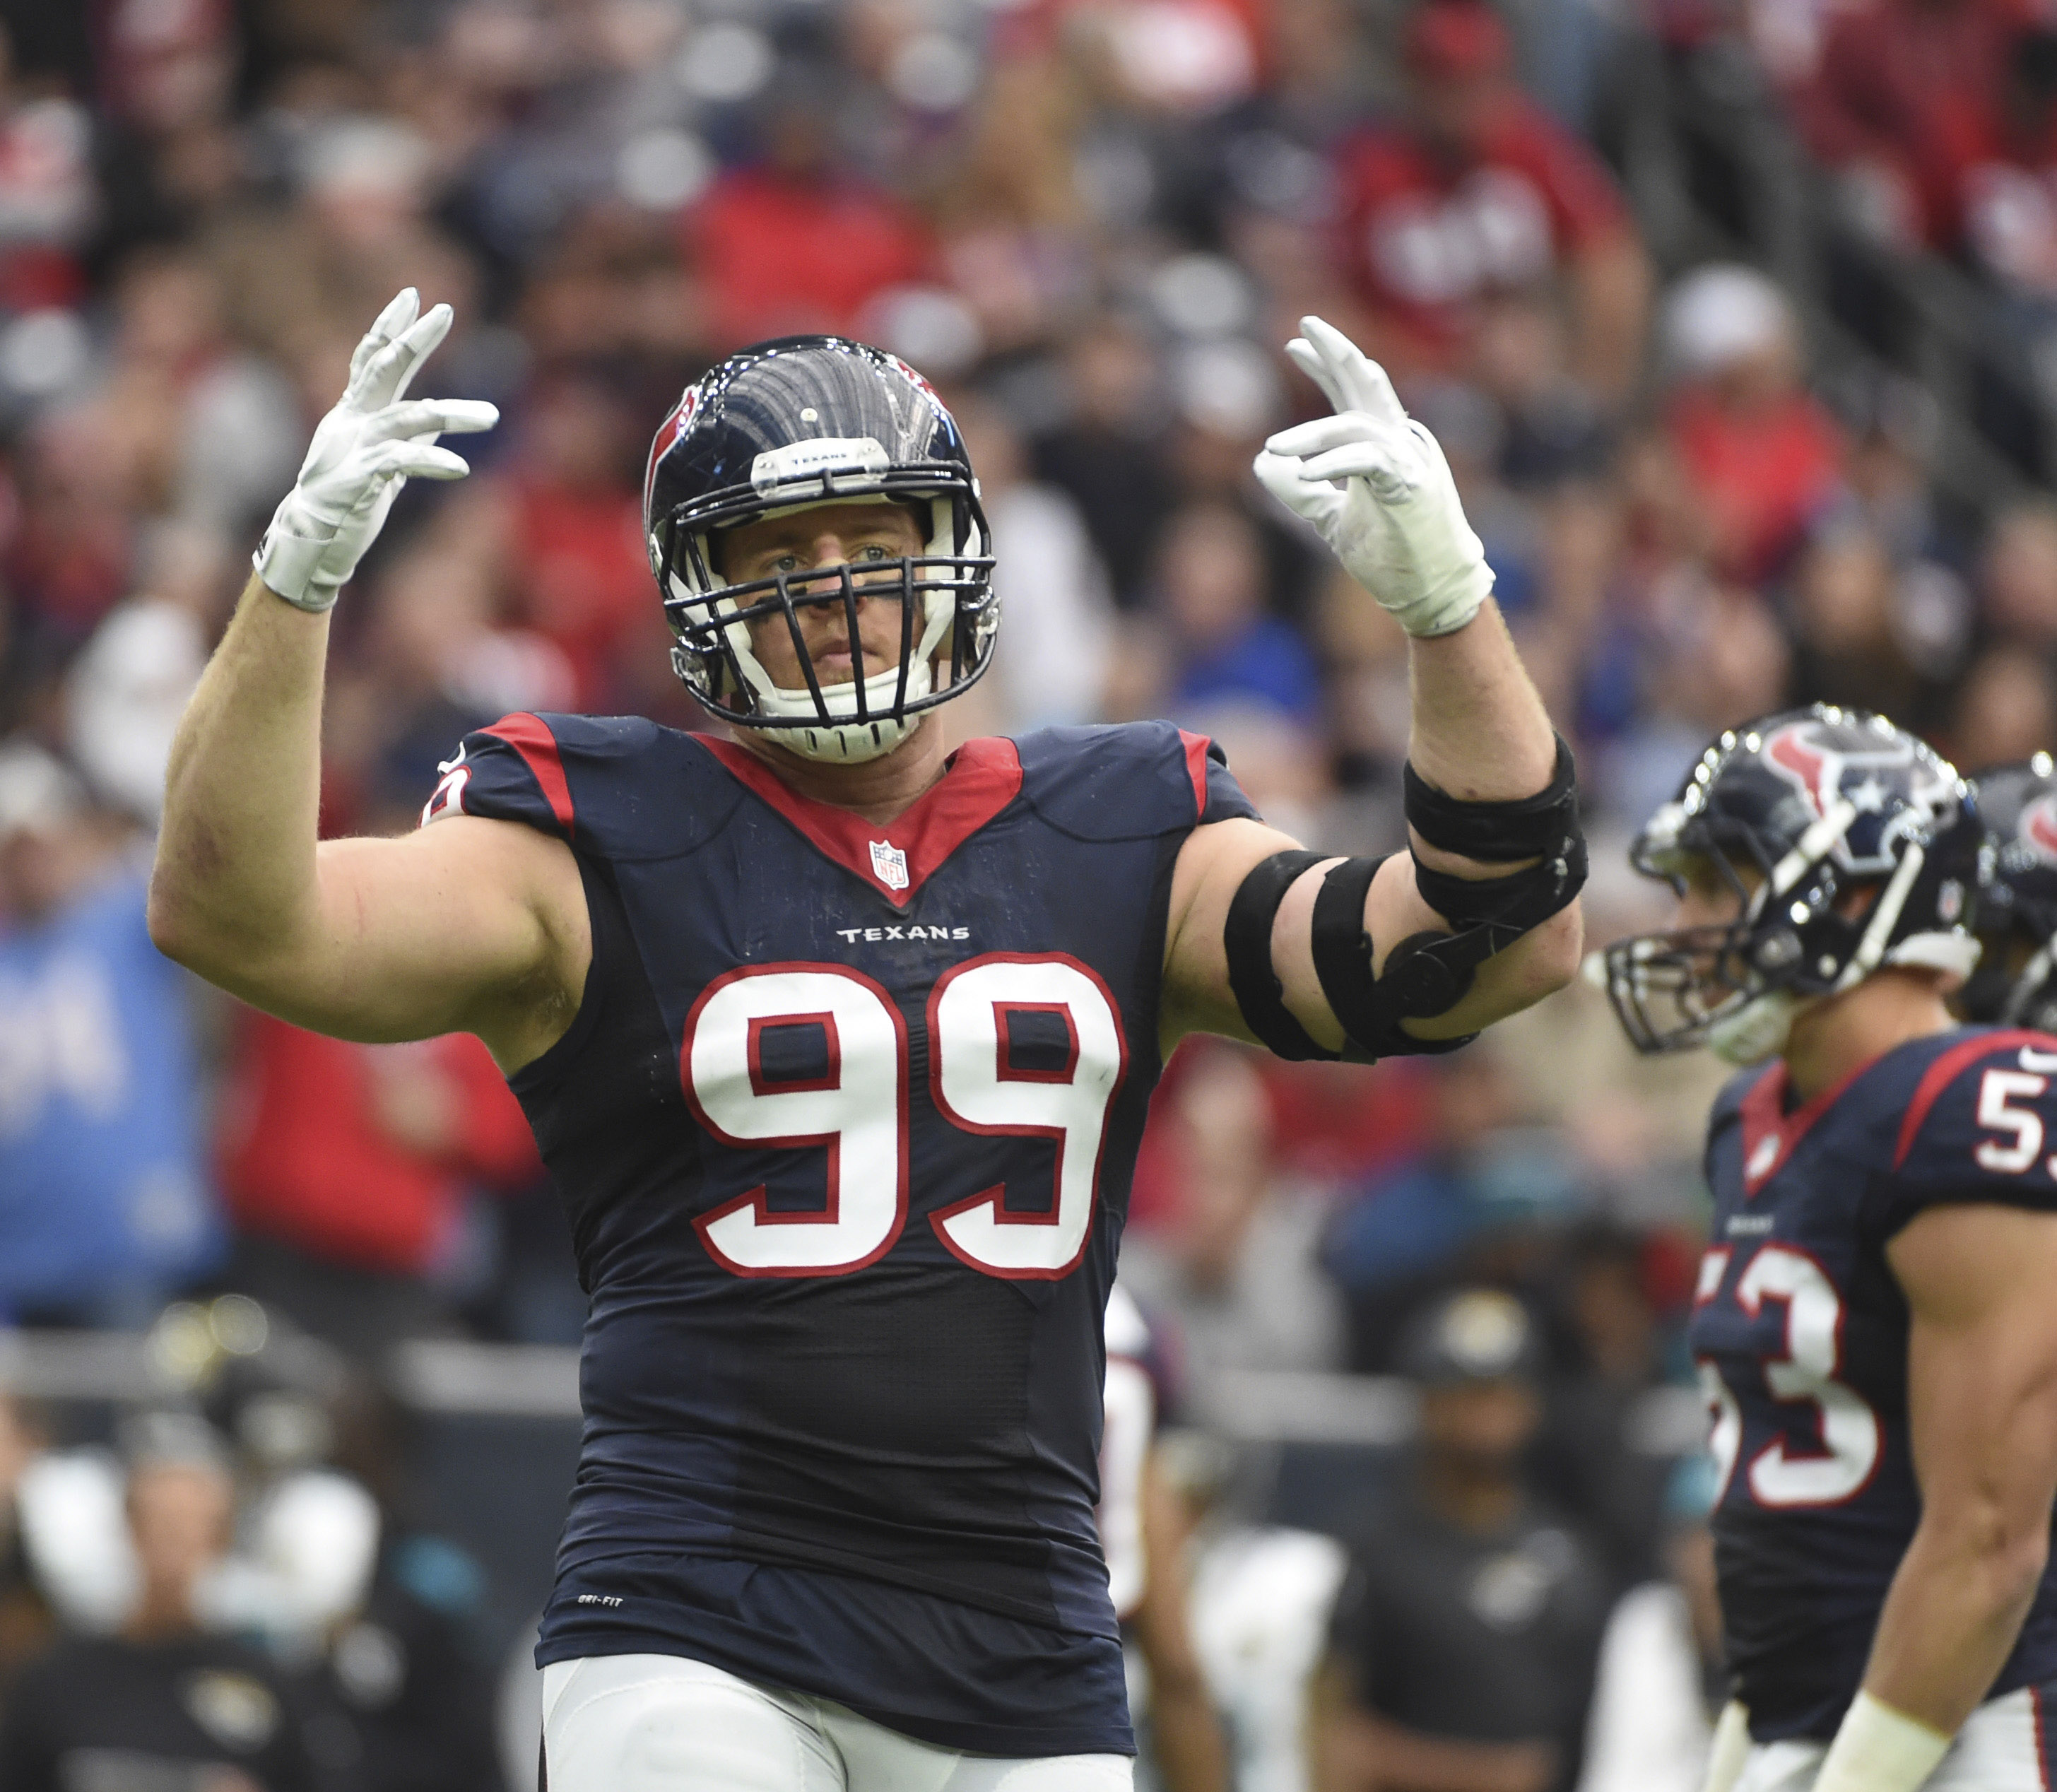 FILE - In this Sunday, Jan. 3, 2016 file photo, Houston Texans defensive end J.J. Watt (99) is shown during the first half of an NFL football game in Houston. (AP Photo/Eric Christian Smith, File)